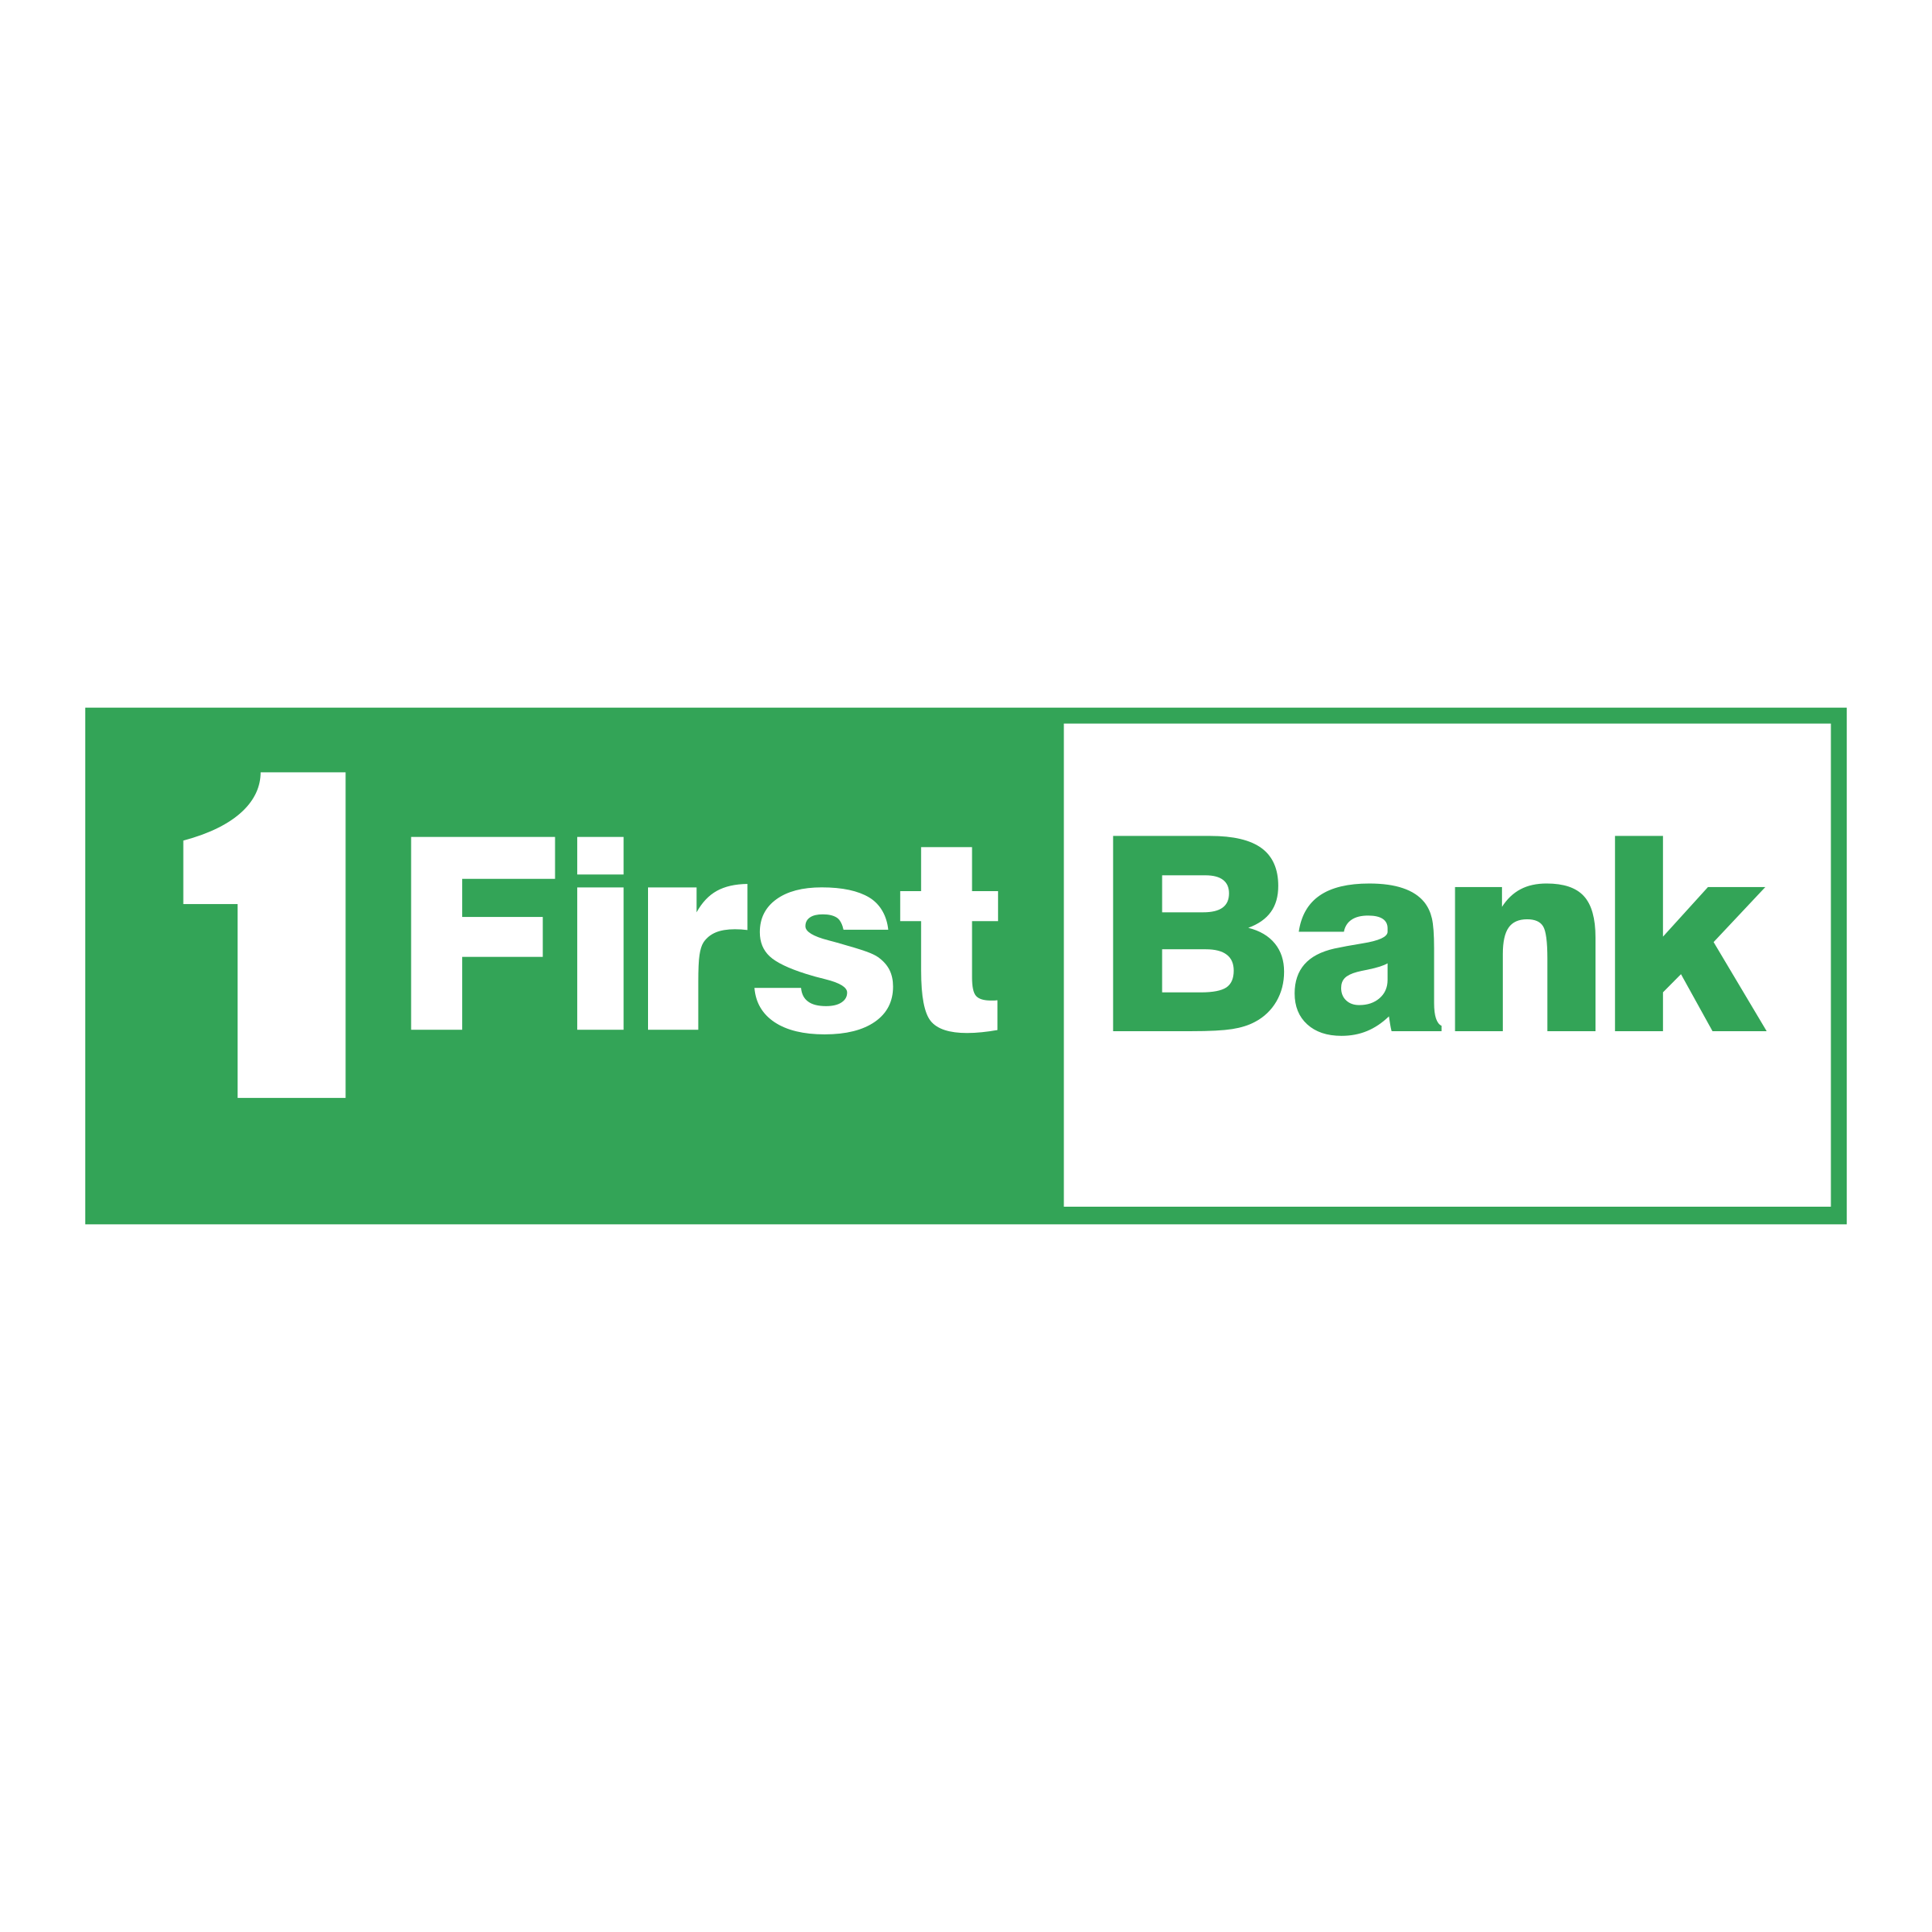 First Bank Logo PNG Transparent & SVG Vector.